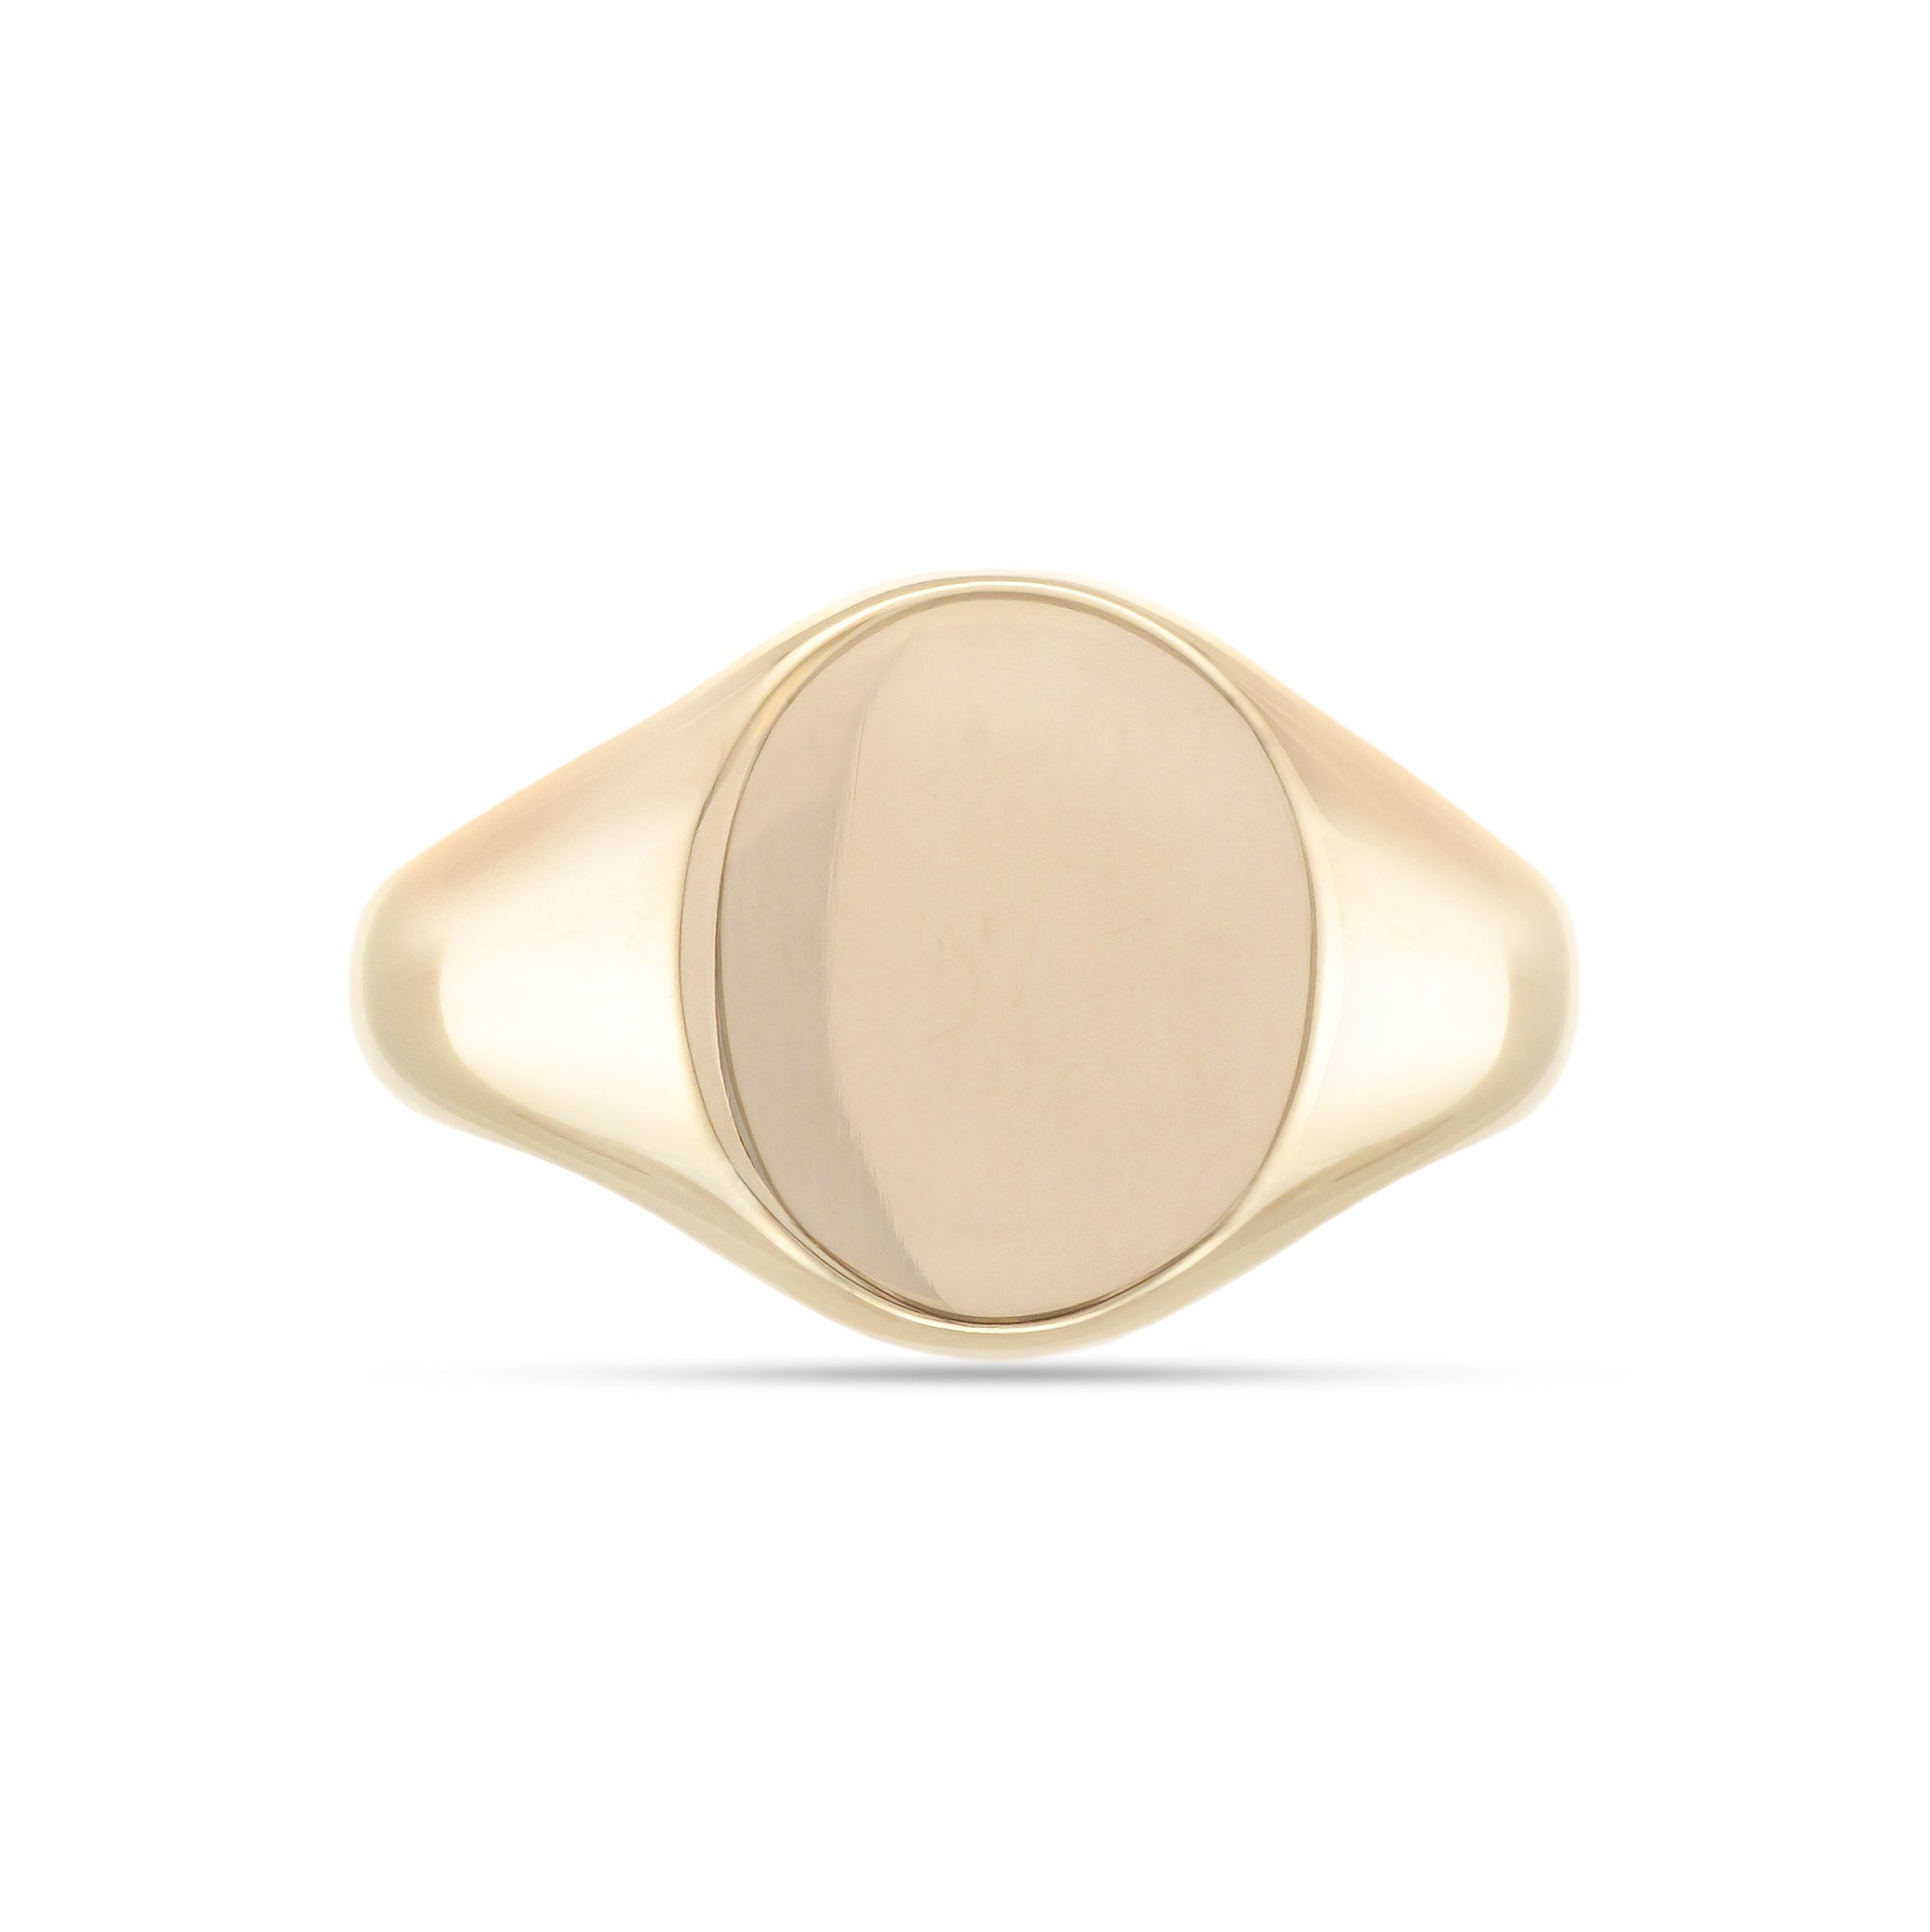 9ct Yellow Gold Oval Signet Ring 16mm x 13mm